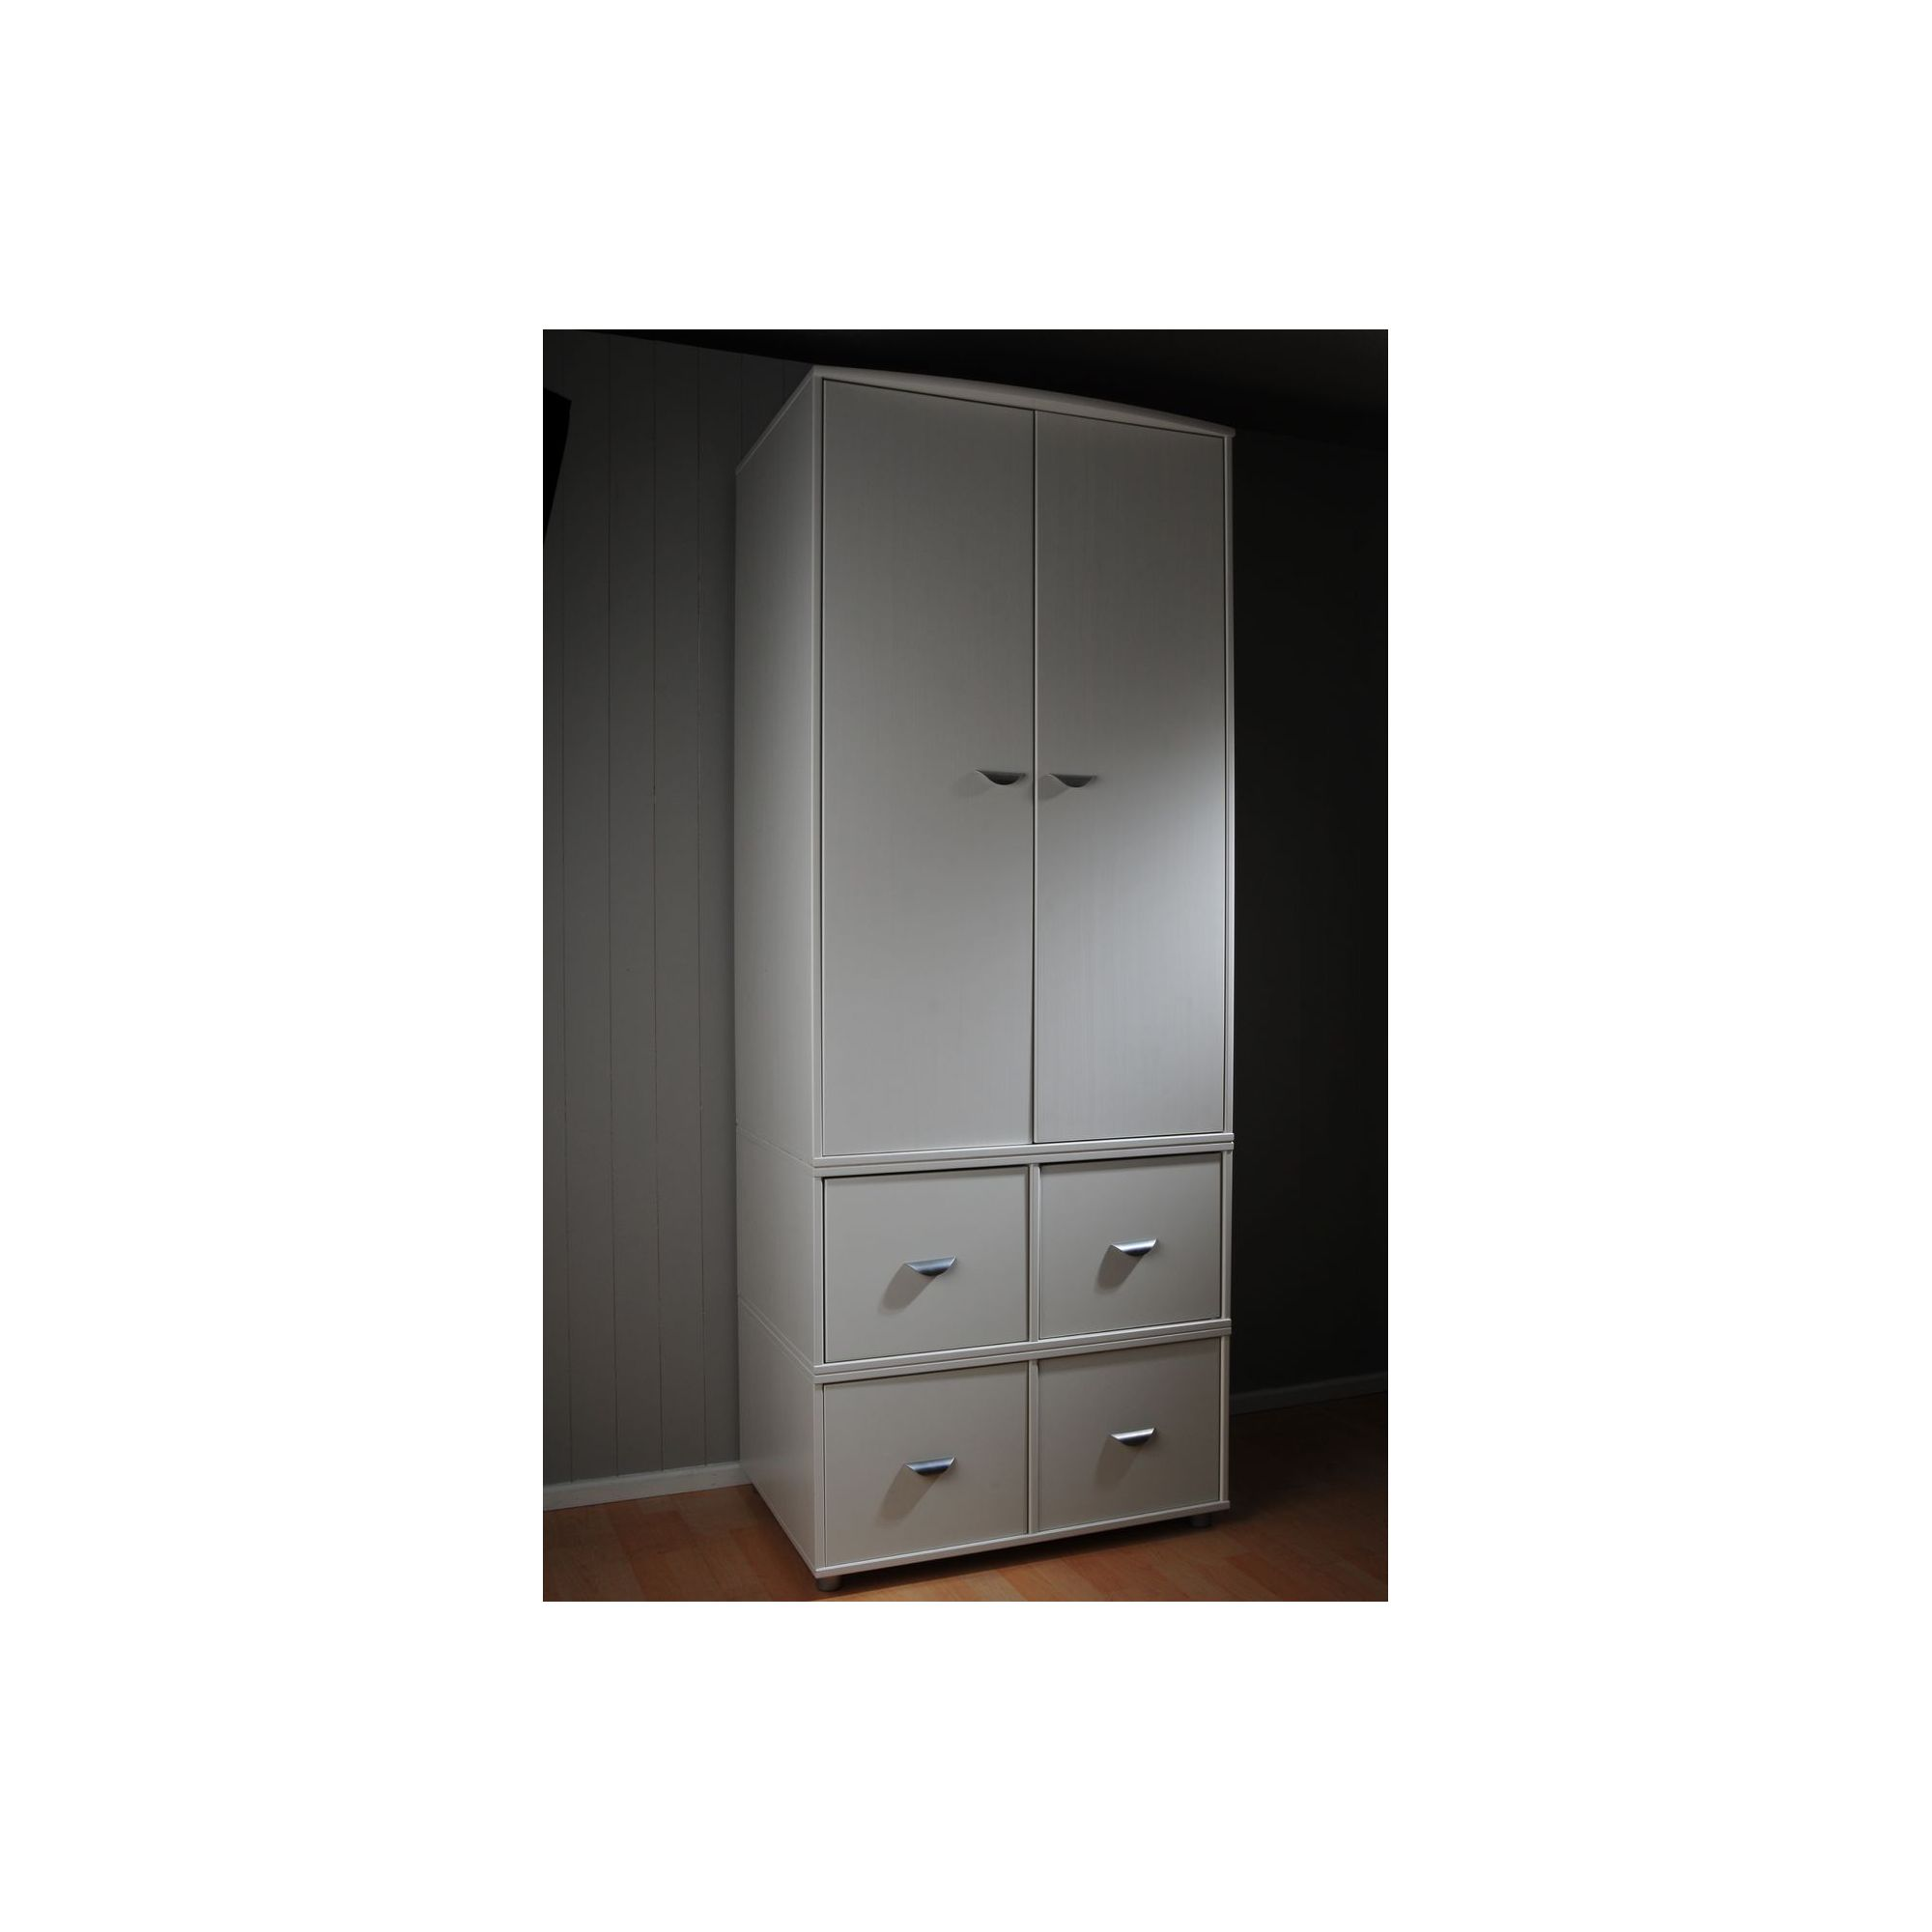 Stompa 2 Door 4 Drawer Wardrobe - Antique - Lilac at Tesco Direct